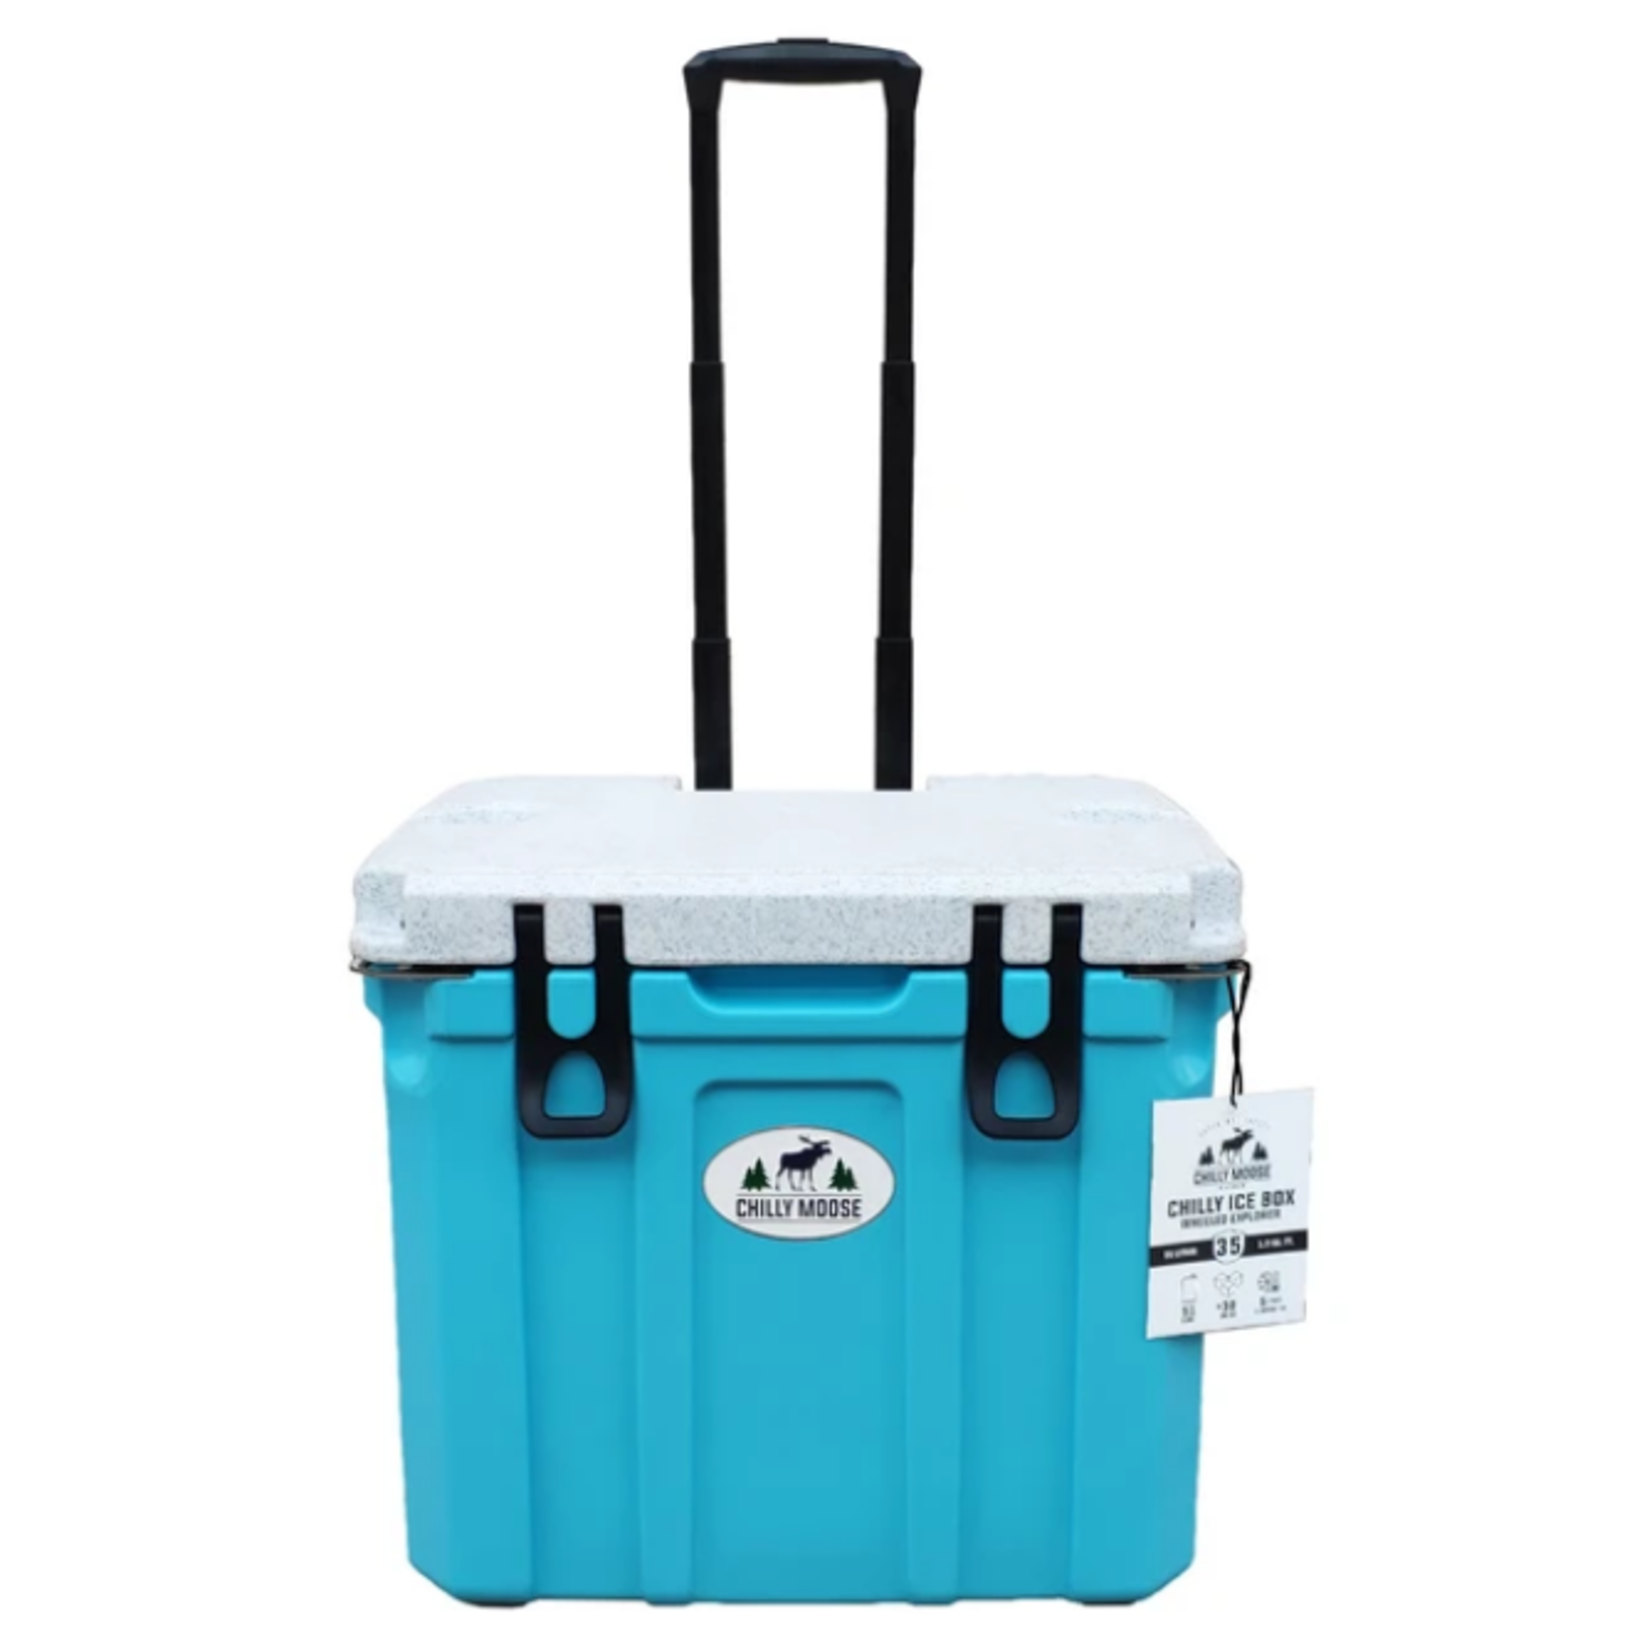 Chilly Moose 35L Chilly Ice Box w/ Wheels